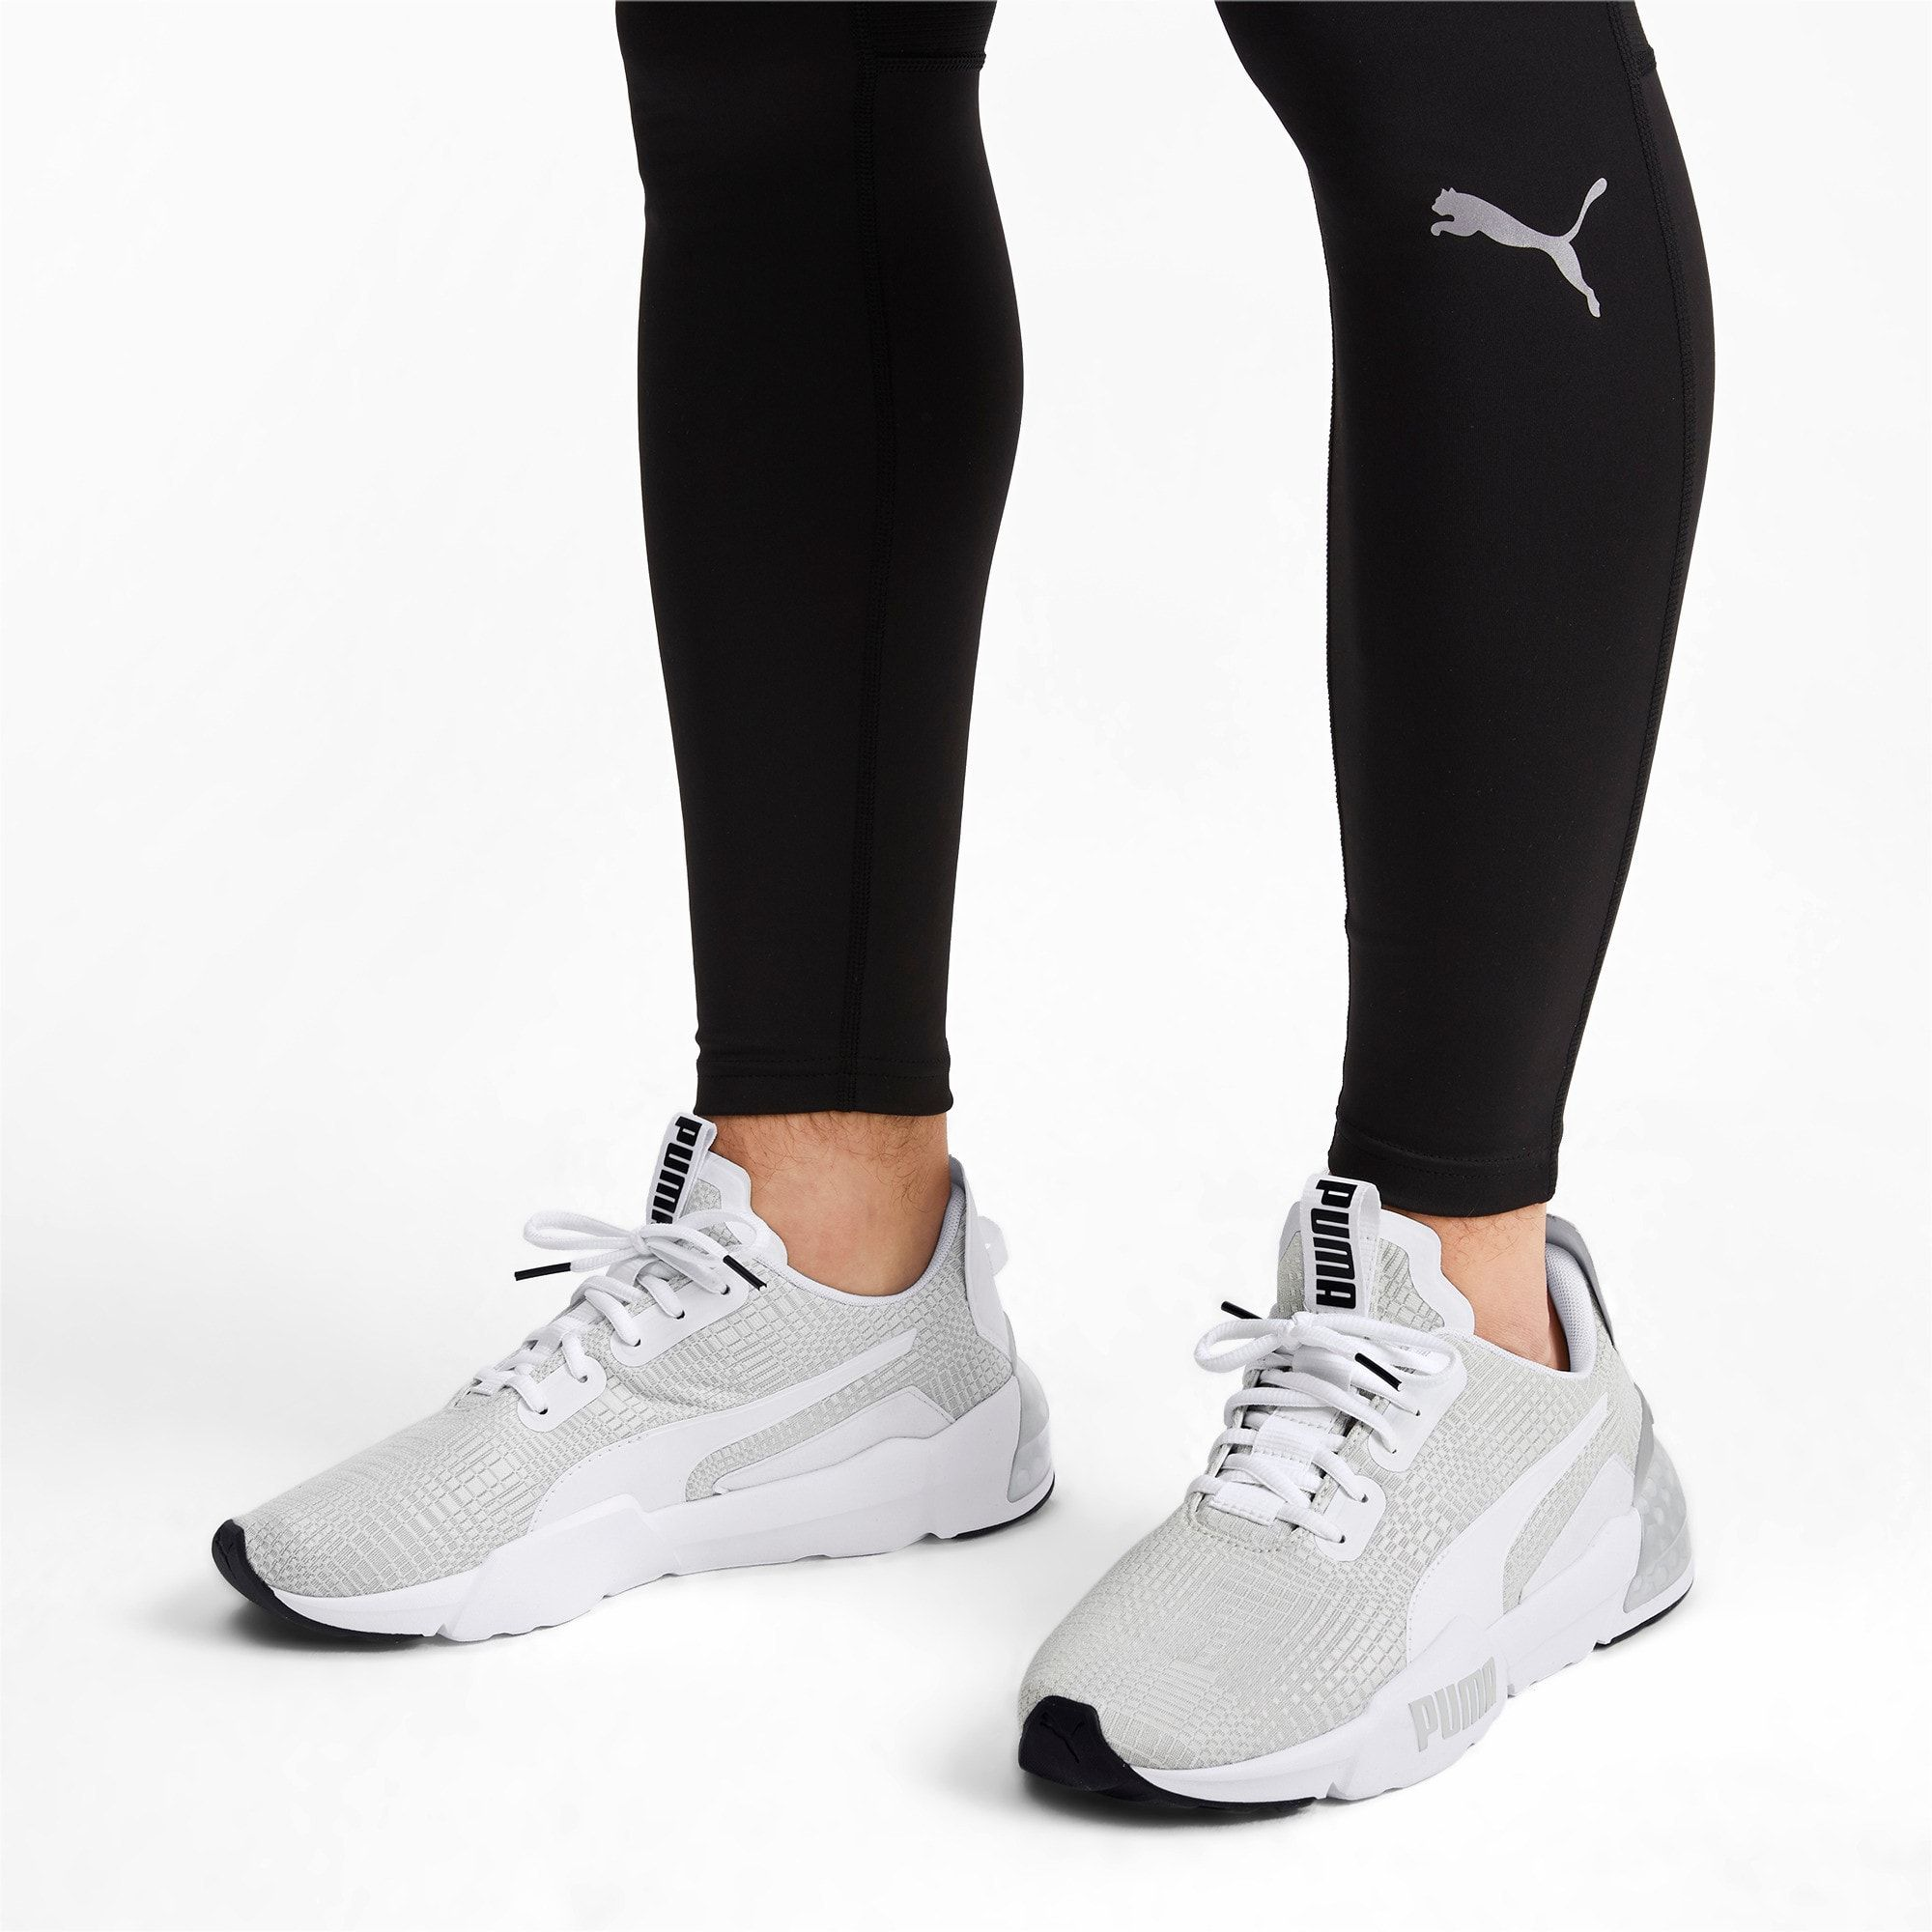 PUMA Cell Phase Lights Men's Running Shoes in WhiteGrey